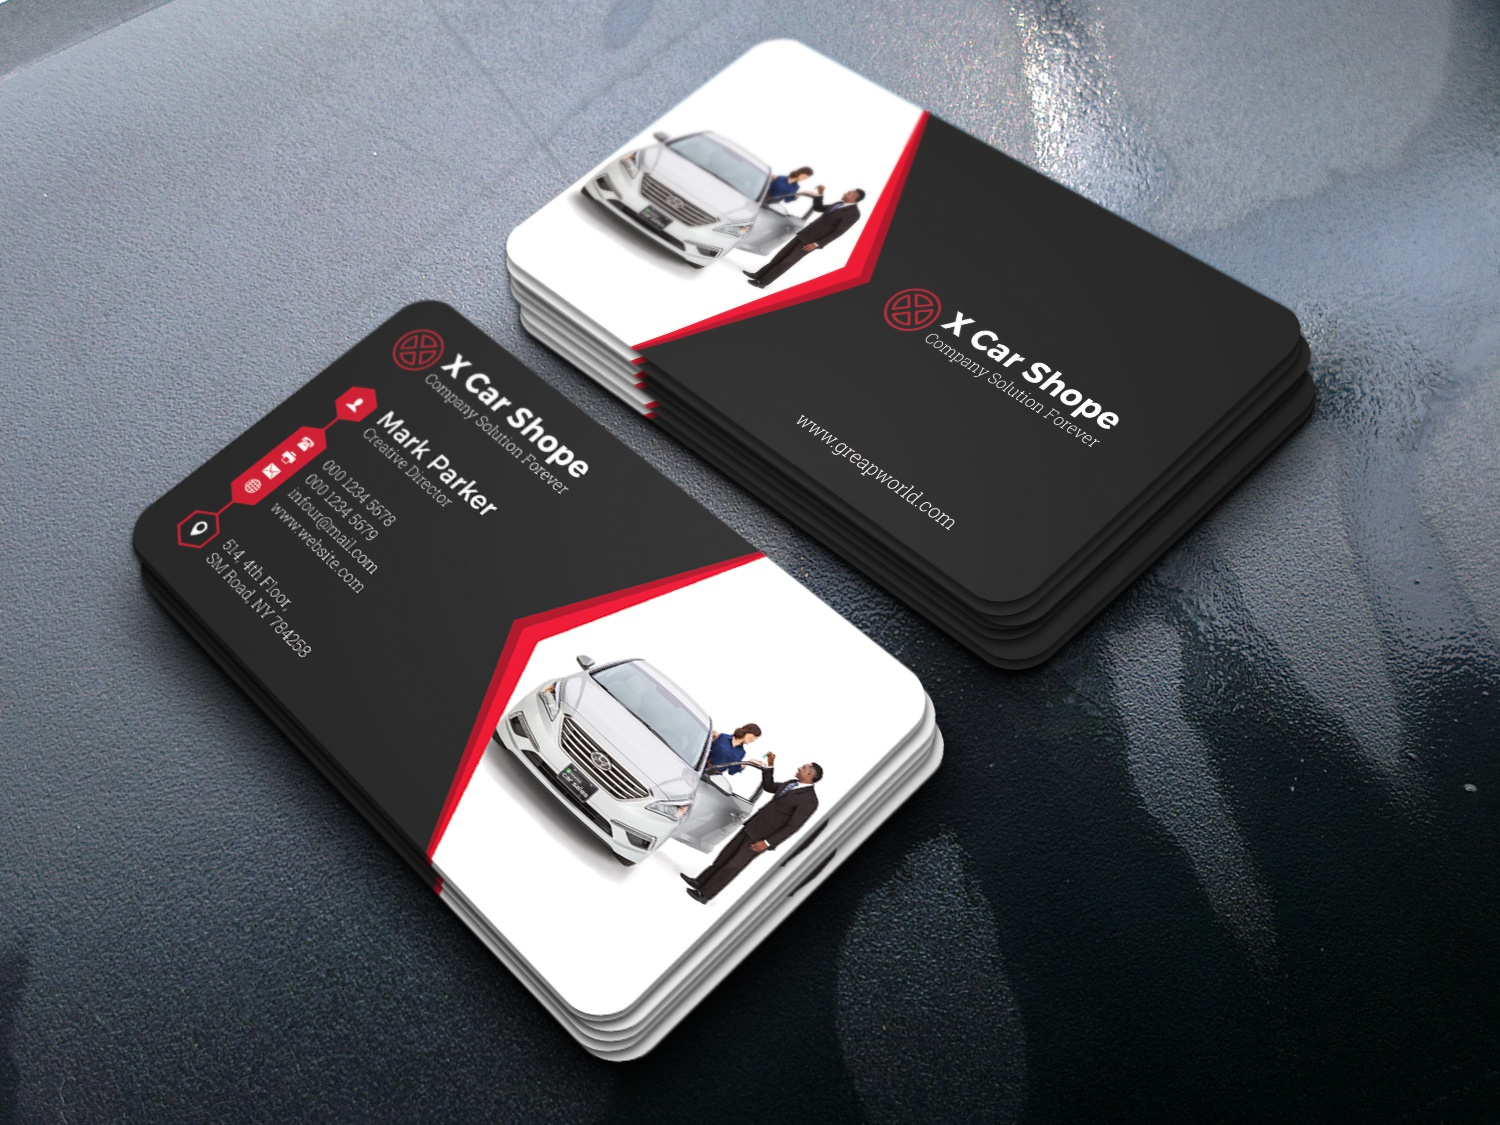 Rent a car business card by ajoy kumer dribbble this is a rent a car business card this template download contains 300 dpi print ready cmyk psd files all main elements are editable and customizable reheart Gallery